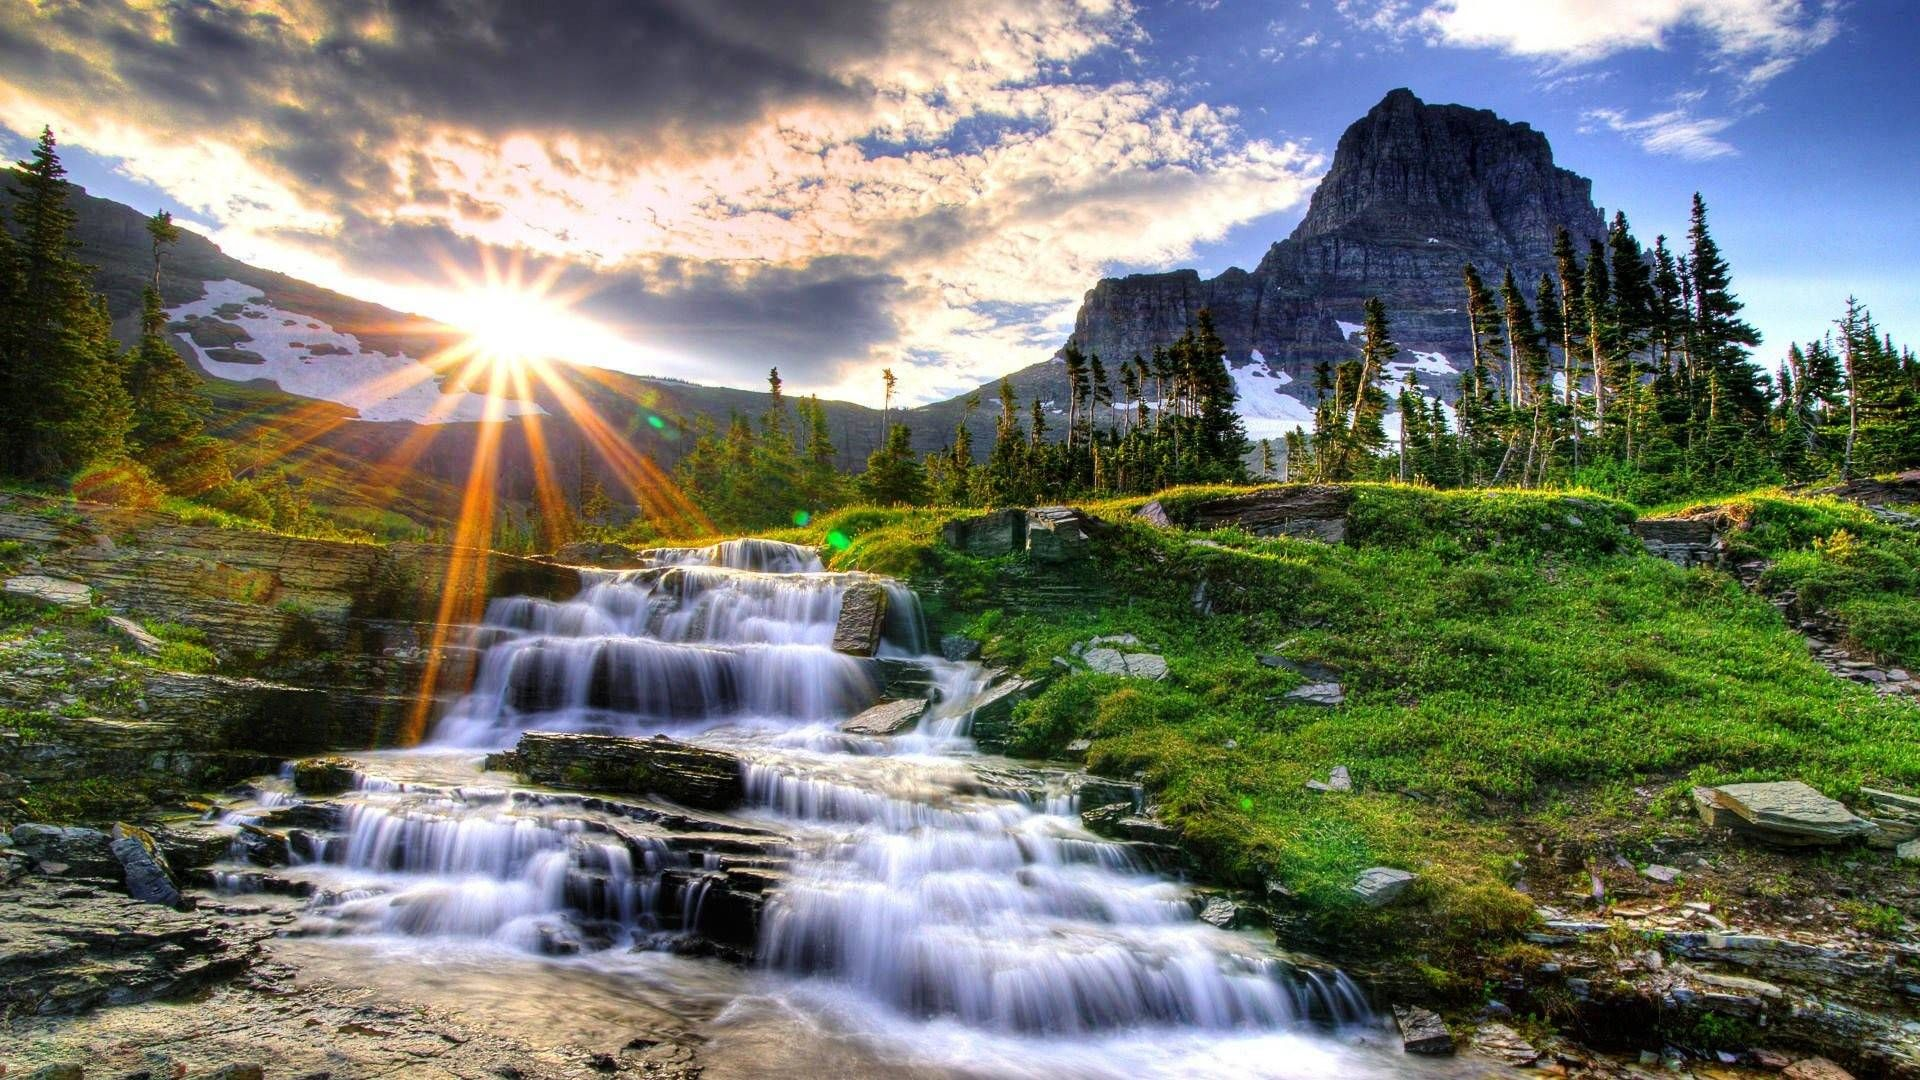 hd nature computer great wallpaper | hd wallpapers | Nature wallpaper, Nature desktop wallpaper ...